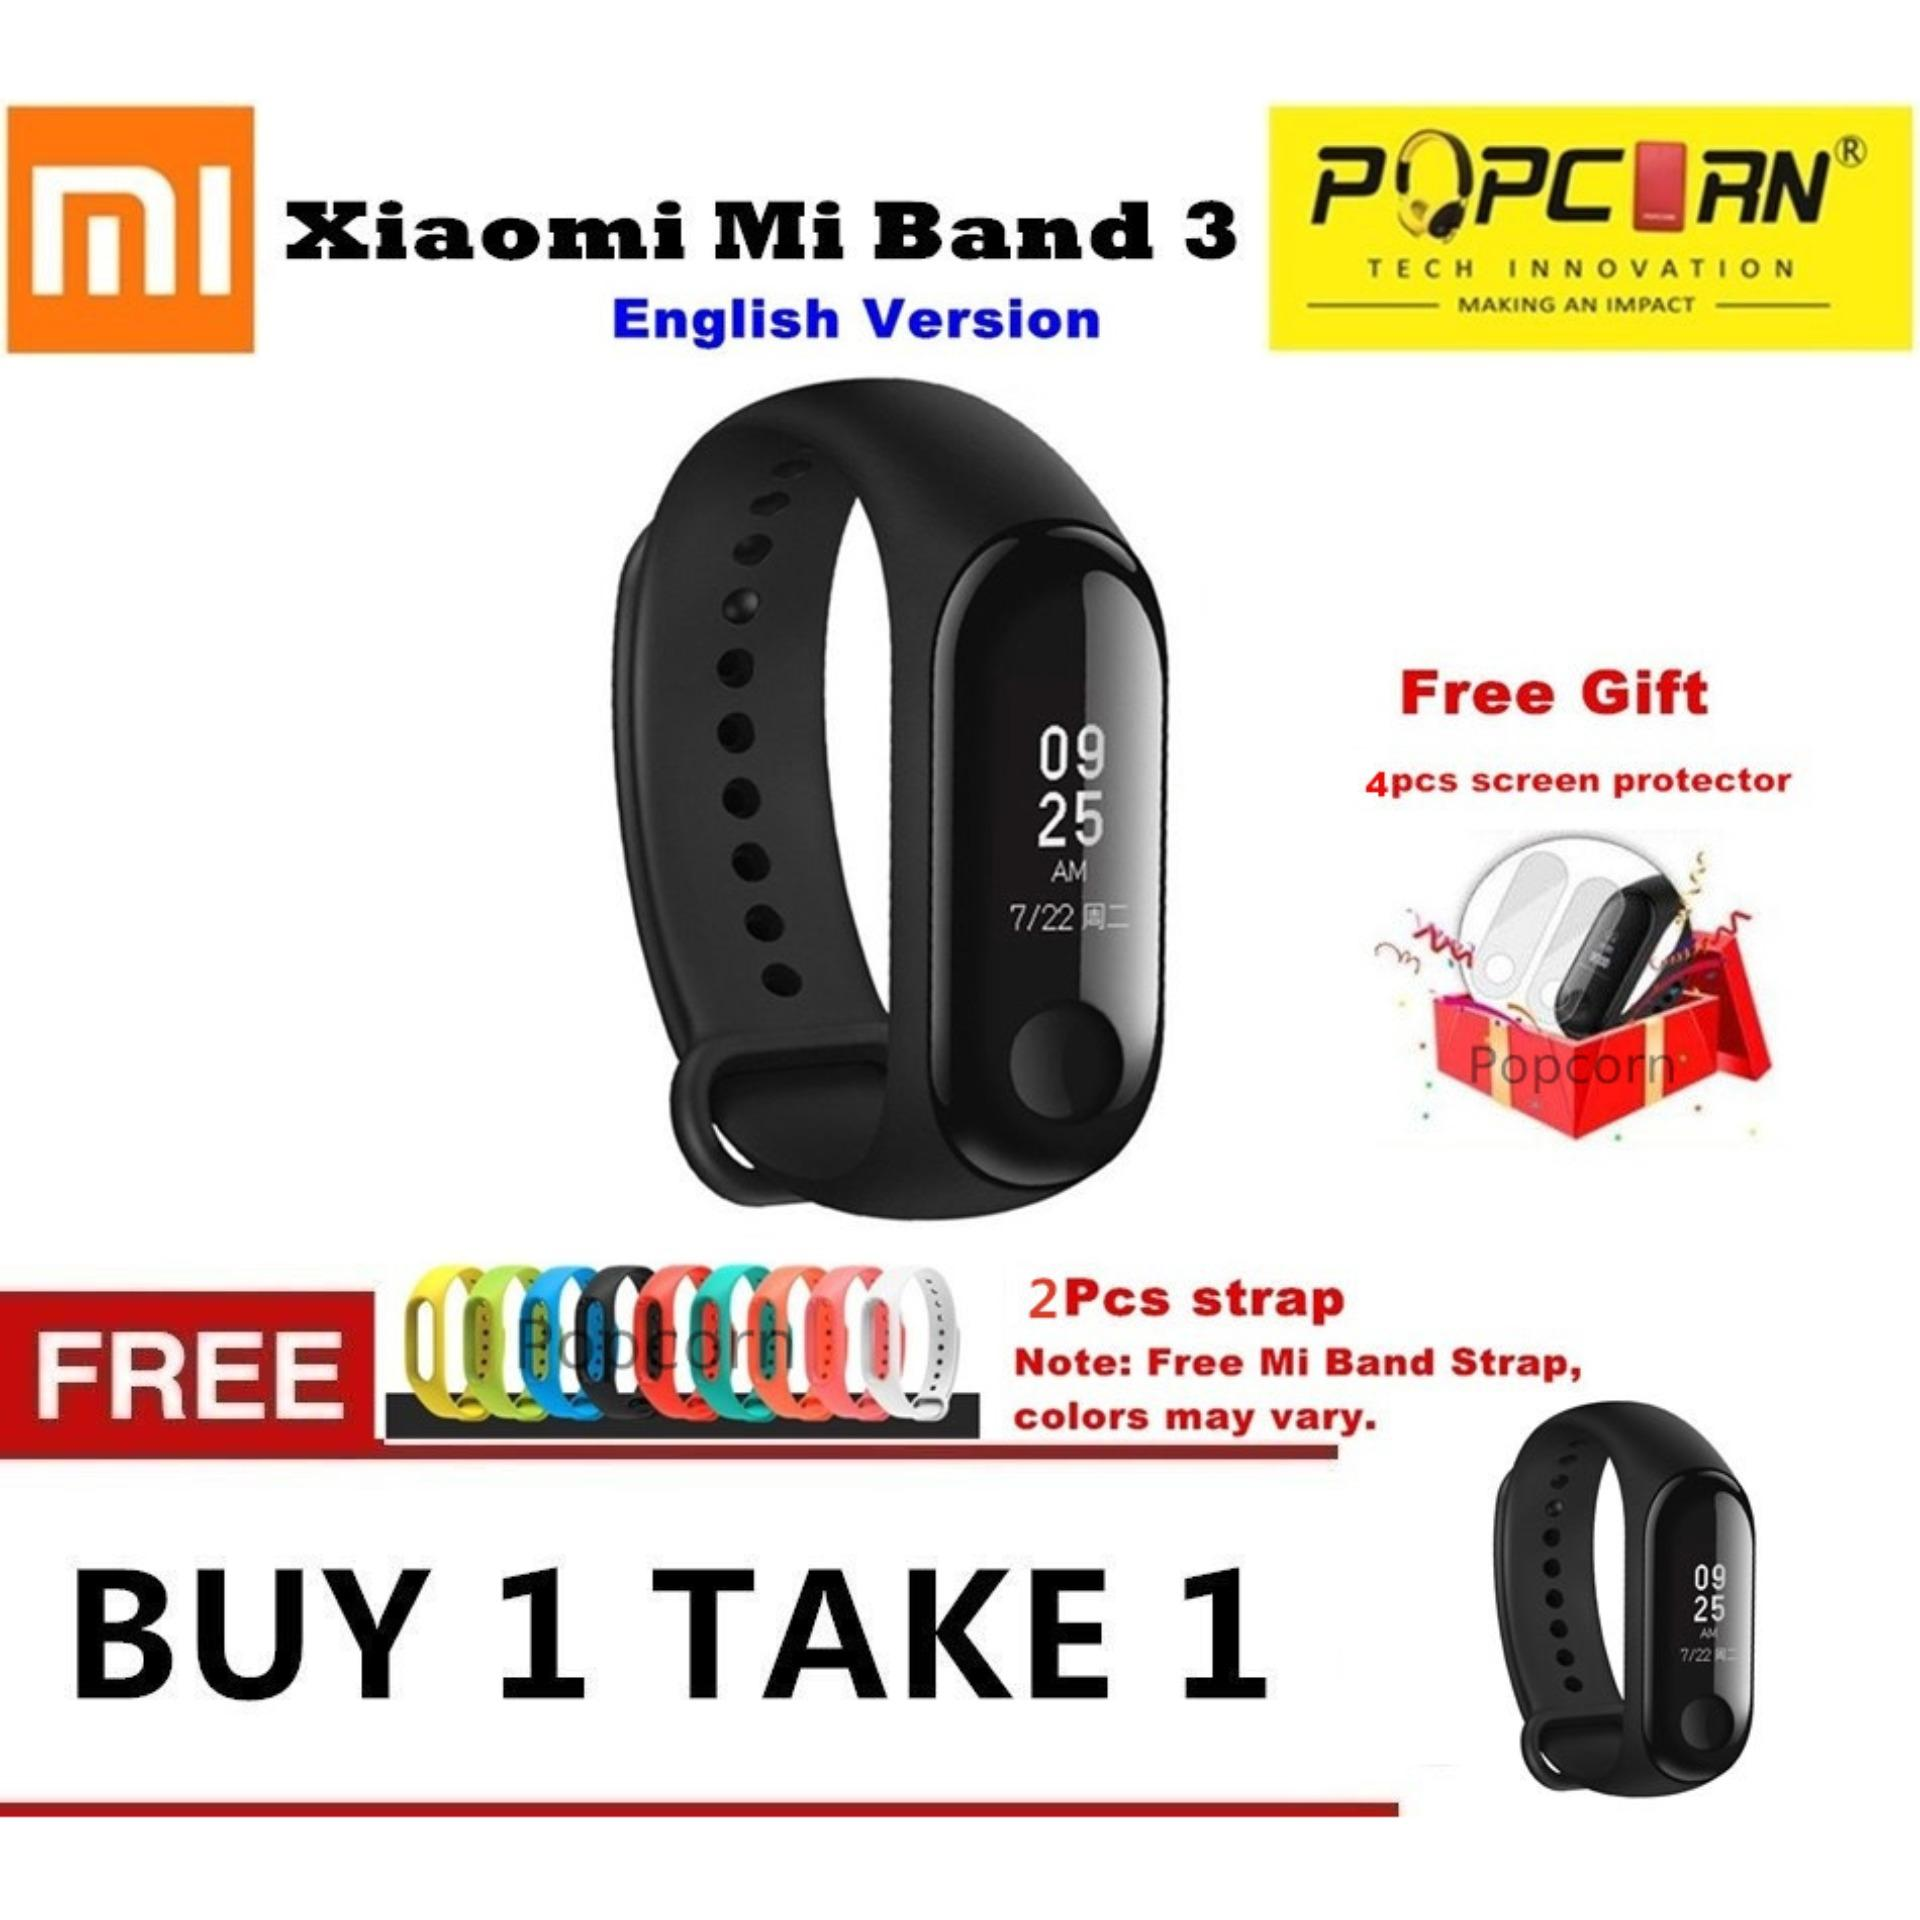 Fitness Tracker For Sale Band Prices Brands Specs In Smart Wristband F1 Plus Original Bracelet Color Screen Xiaomi Mi 3 Heart Rate Monitor Wireless Bluetooth